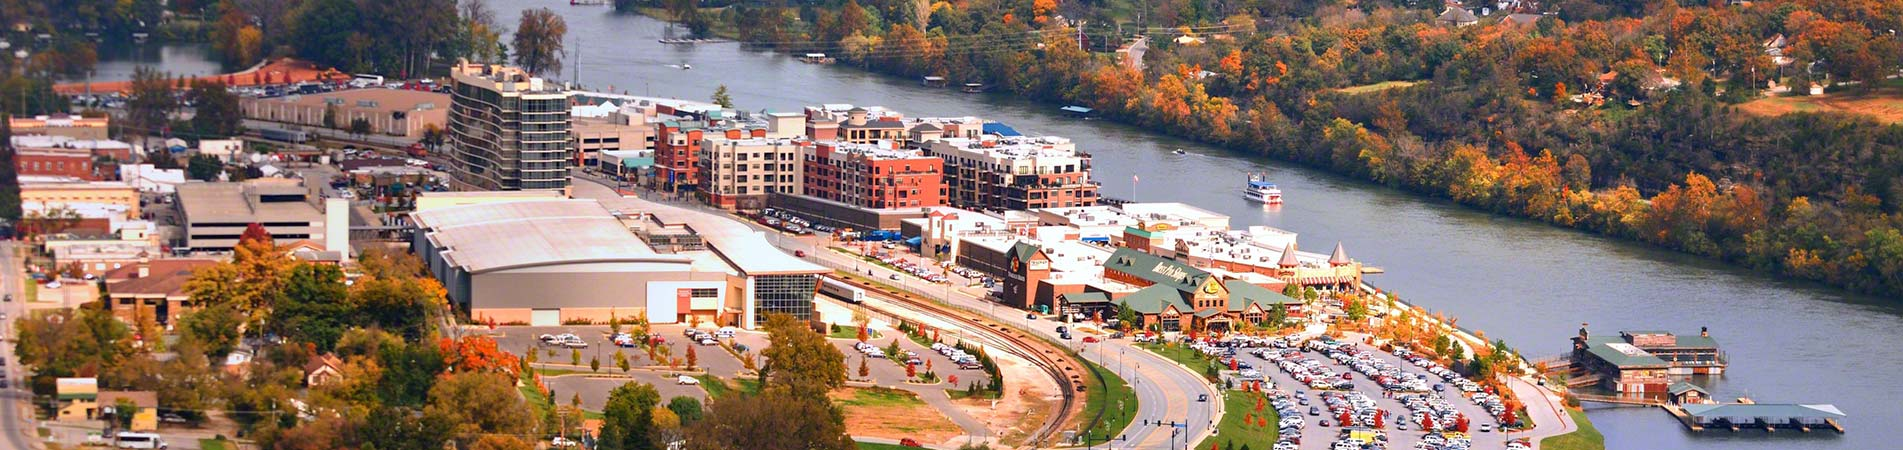 What Branson Landing looks like if you view it from the sky.